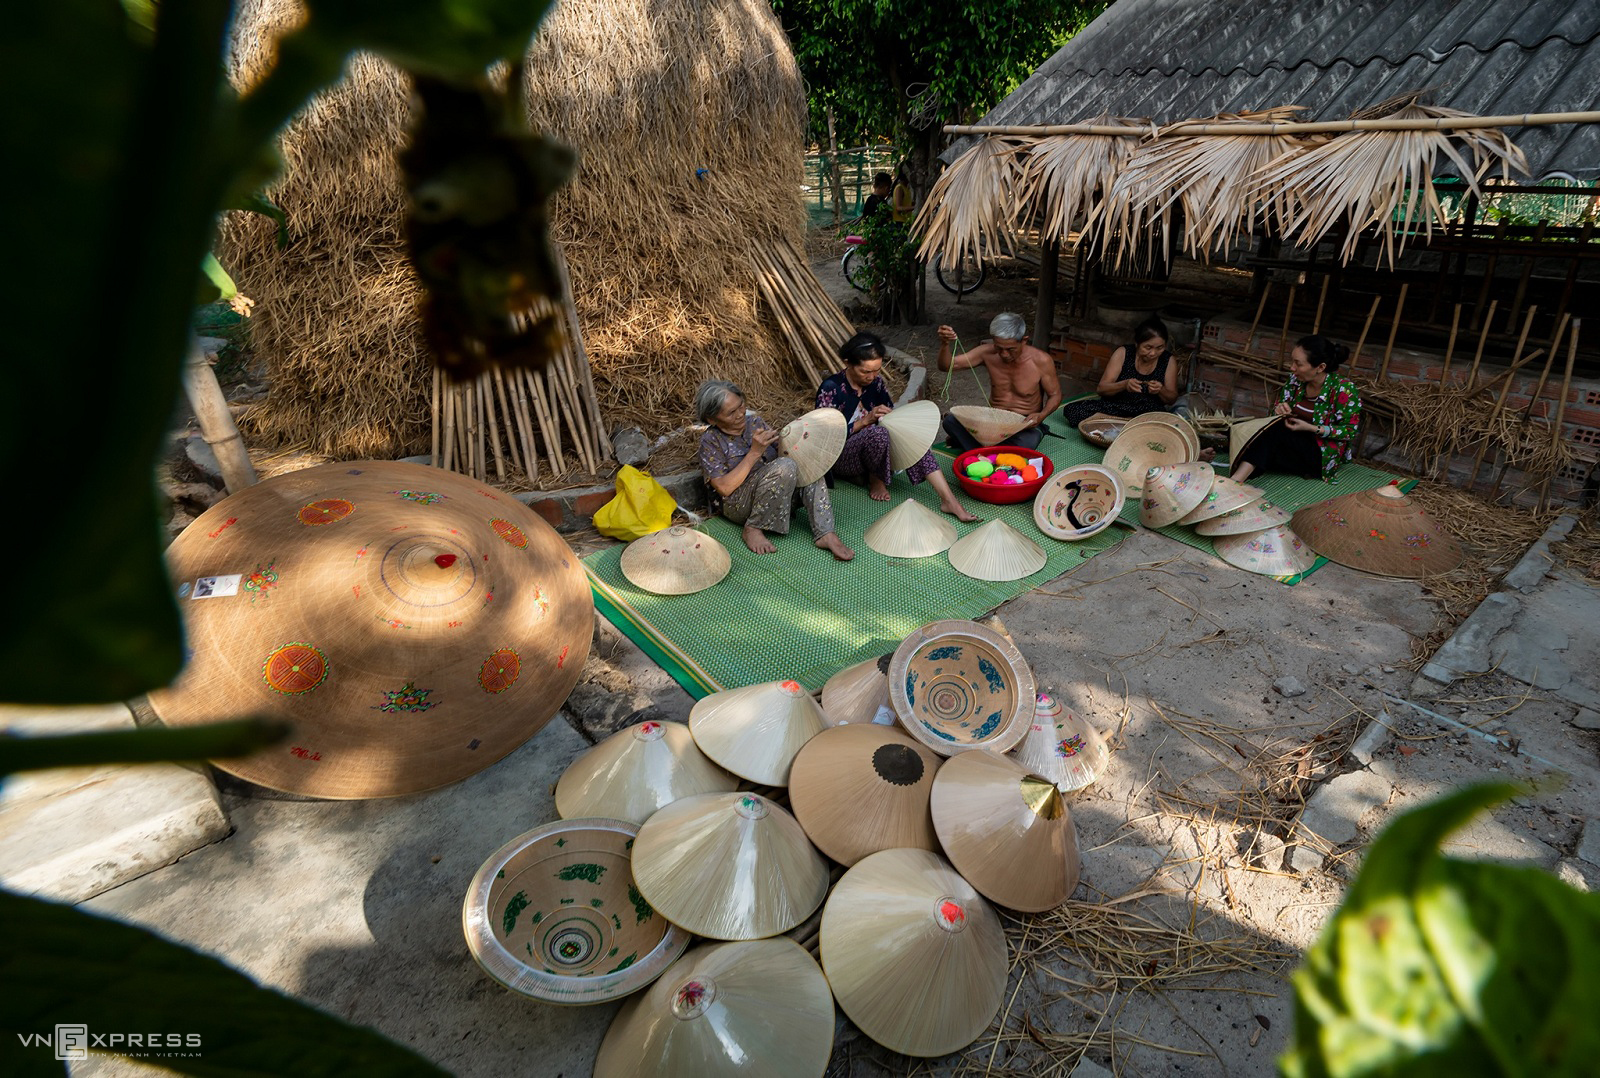 The beauty of Vietnam's traditional craft villages